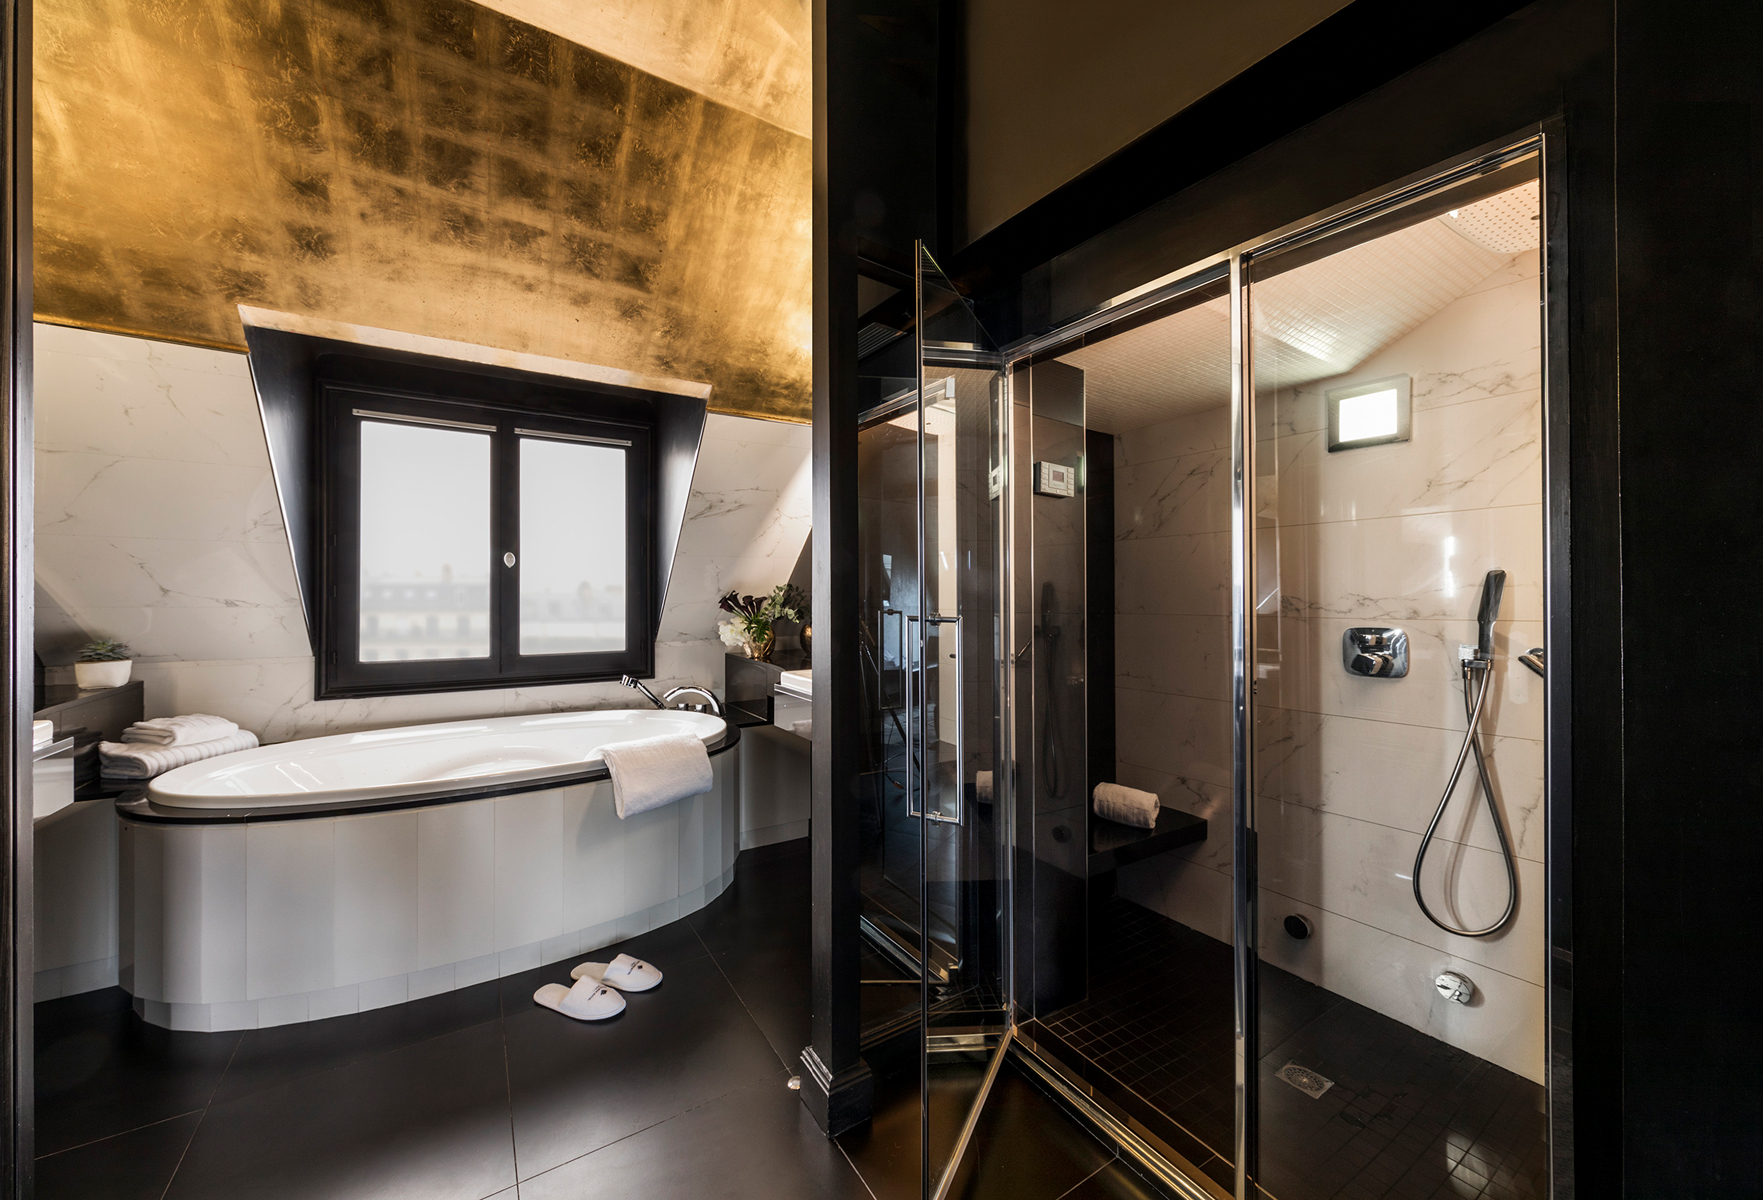 101/Champs Elysees/Homepage/HOMEPAGE - SECTION 2 - SLIDER - SALLE DE BAIN SUITE IMPERIALE.jpg